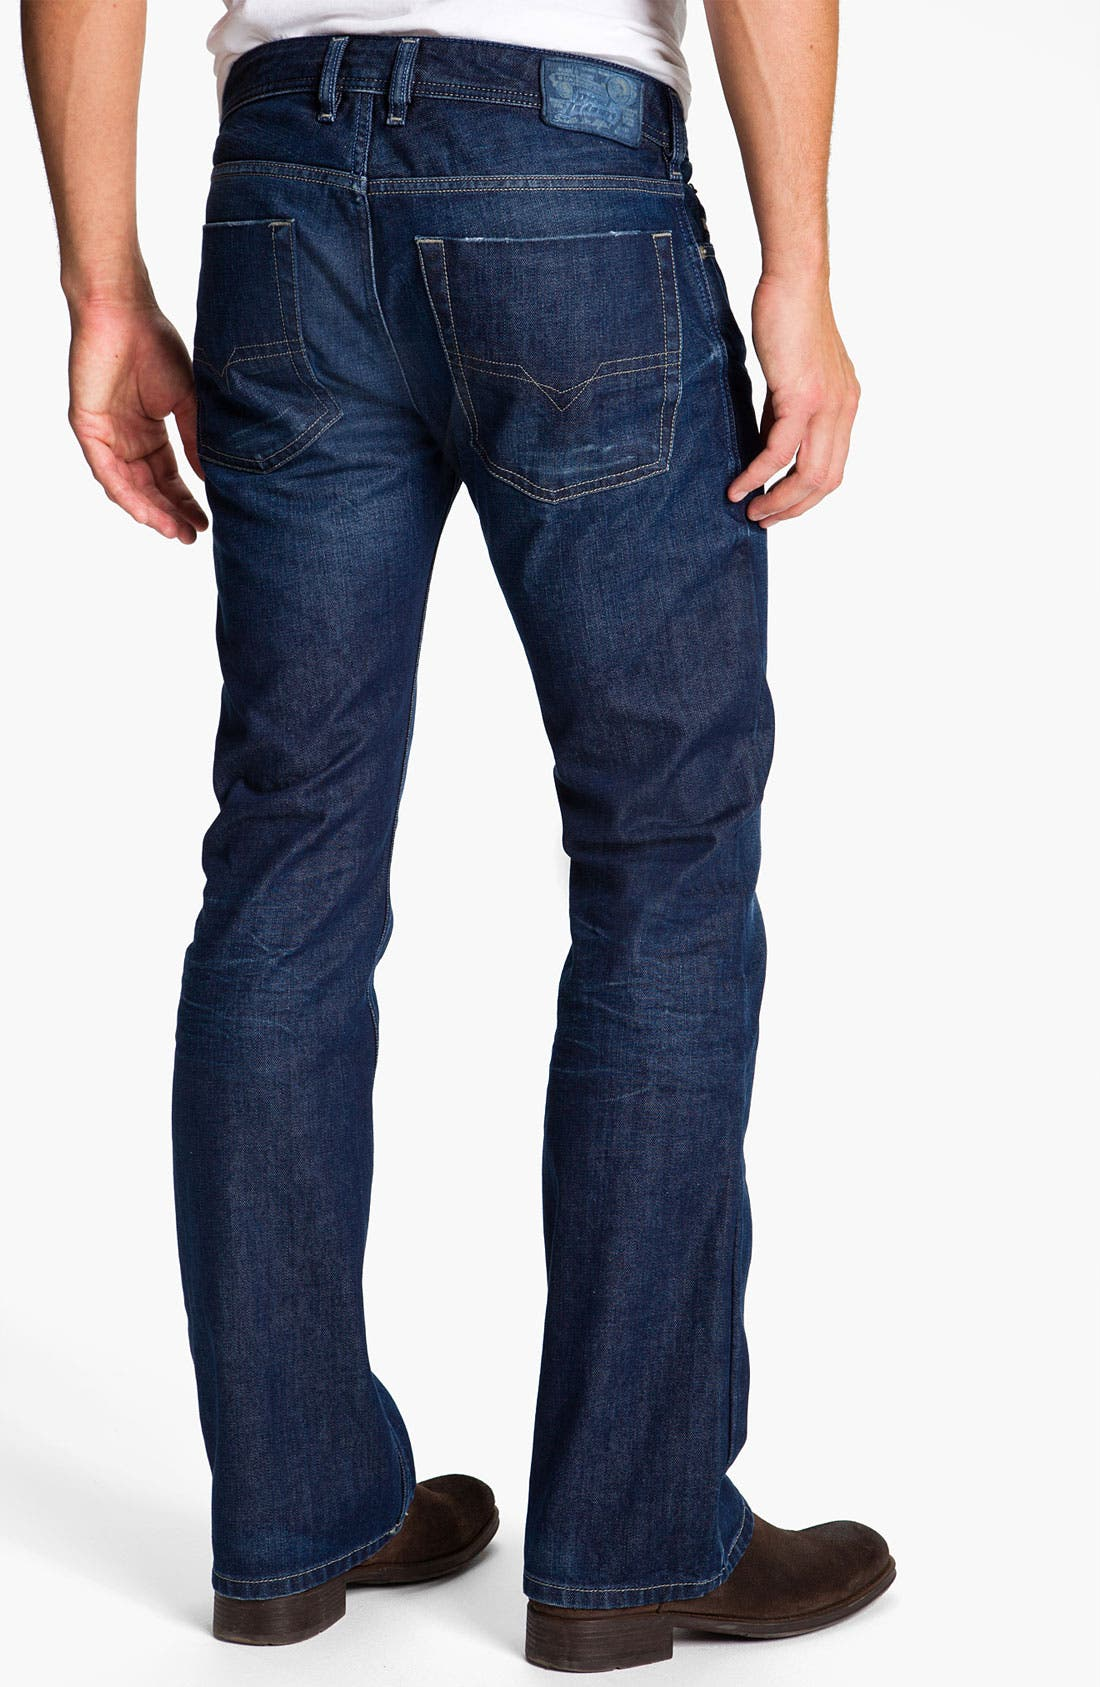 Alternate Image 1 Selected - DIESEL® 'Zatiny' Bootcut Jeans (0802D)